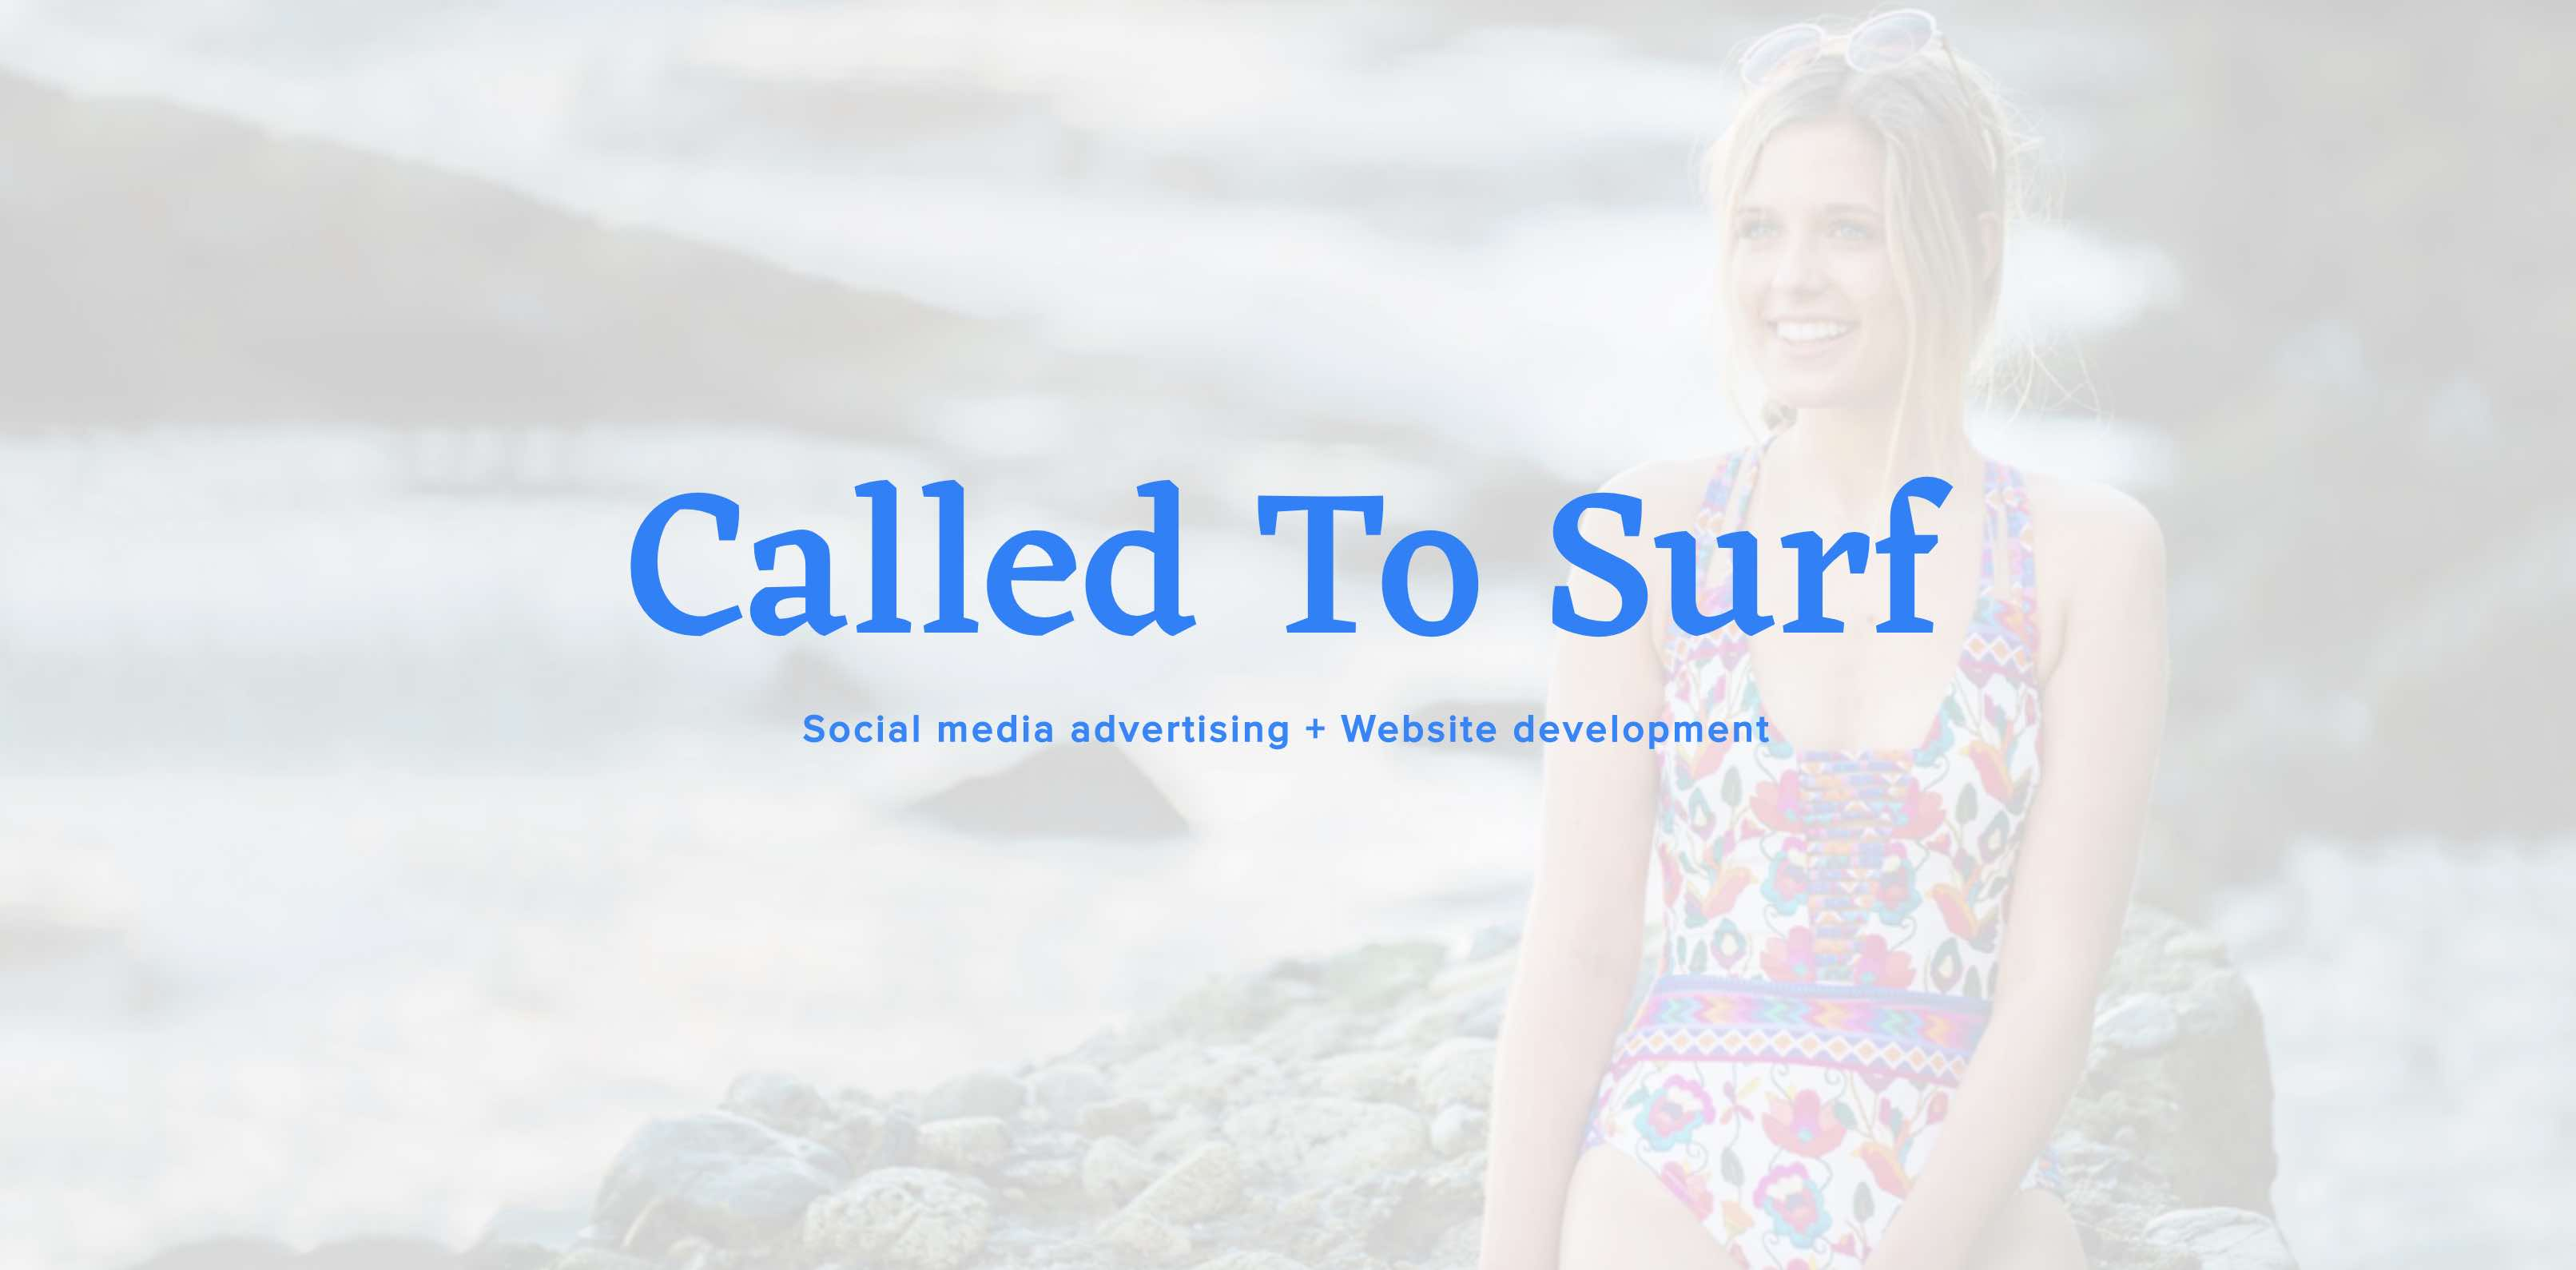 called-to-surf-facebook-study